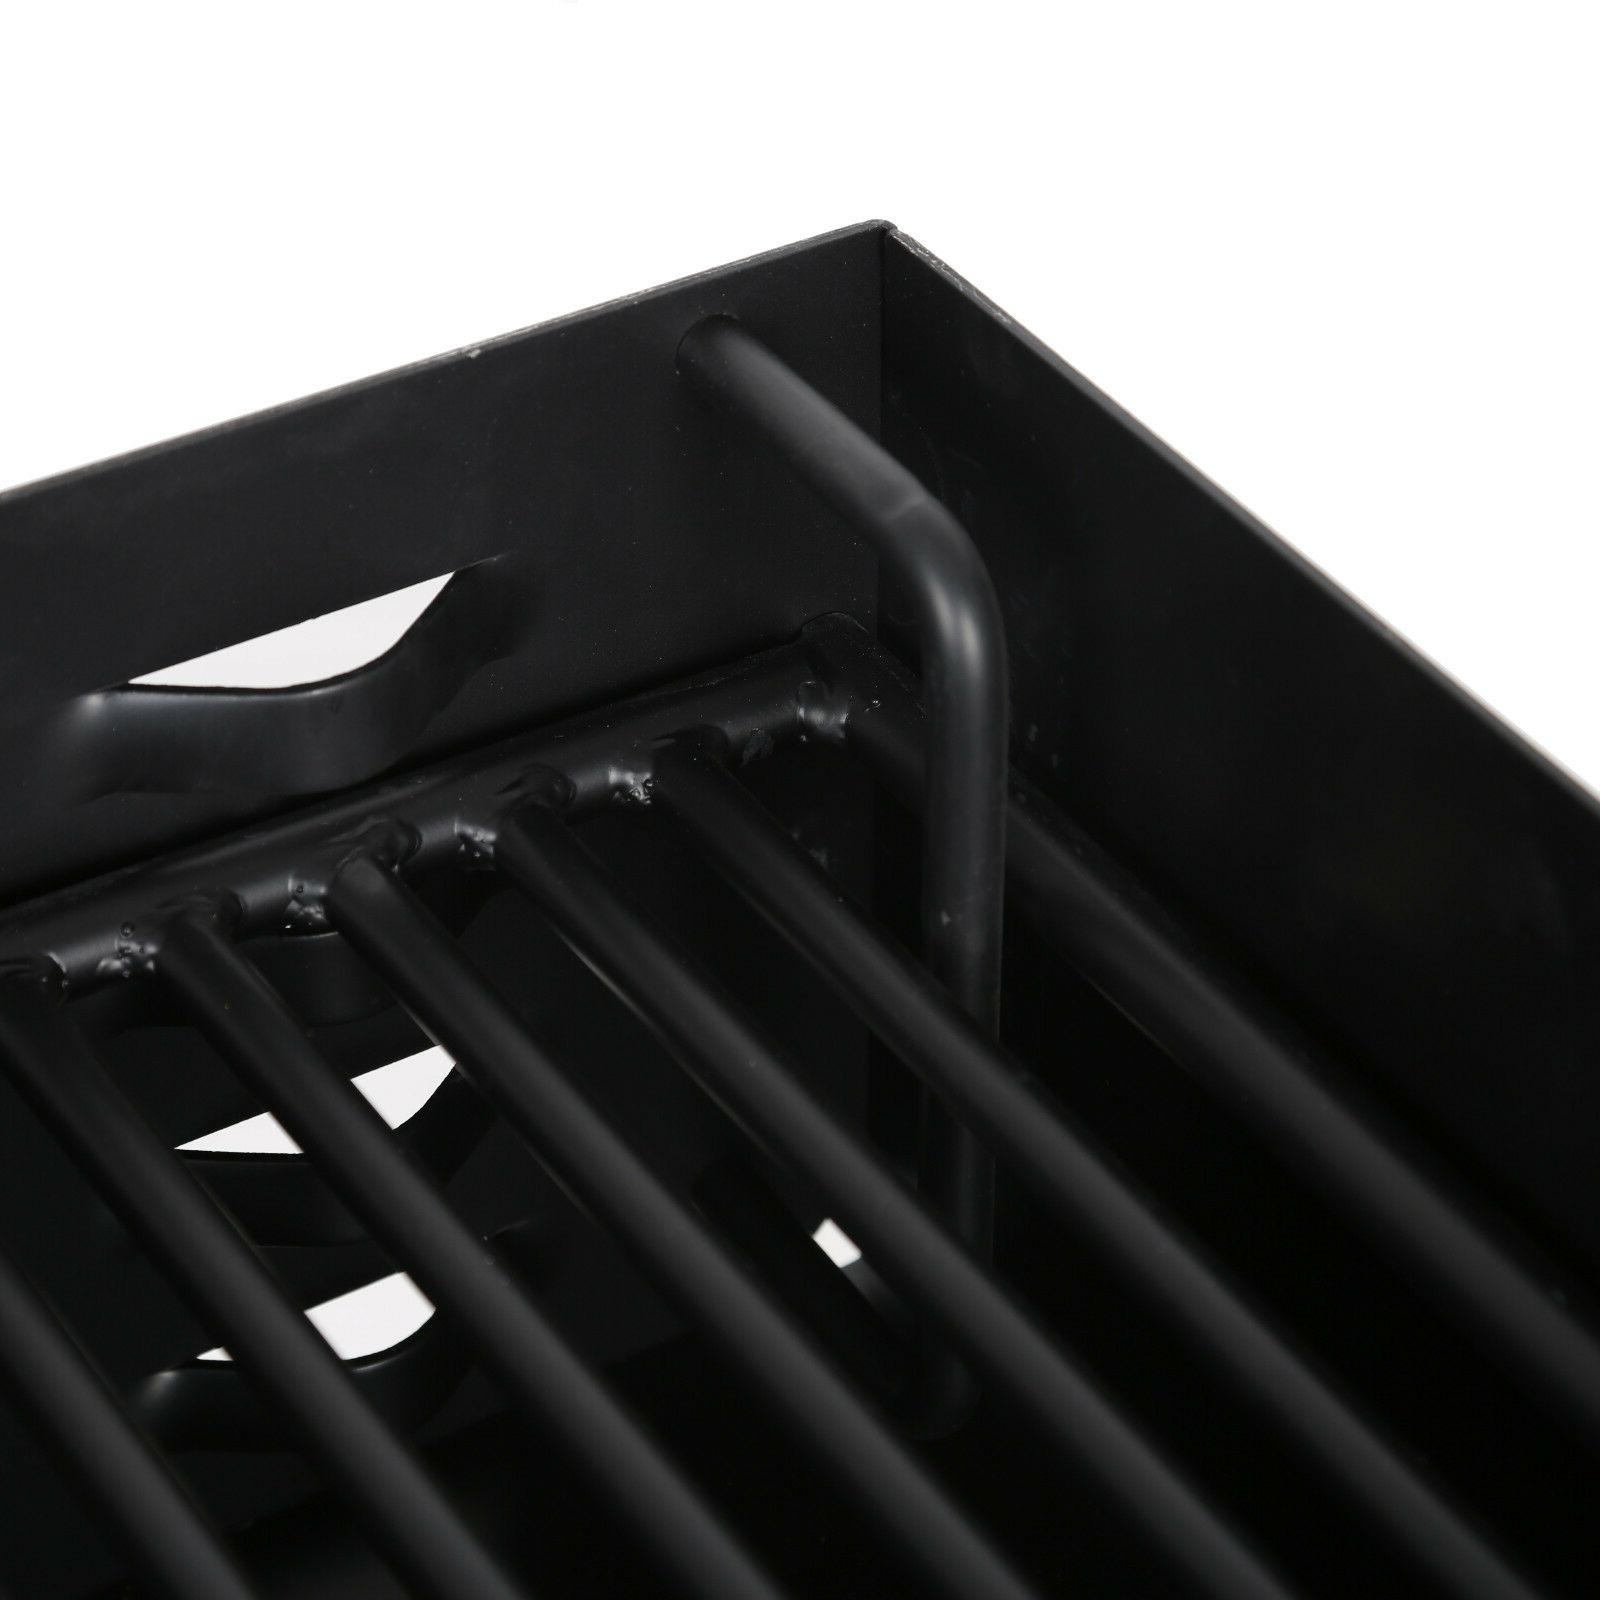 Outdoor Style Charcoal Barbecue Meat BBQ